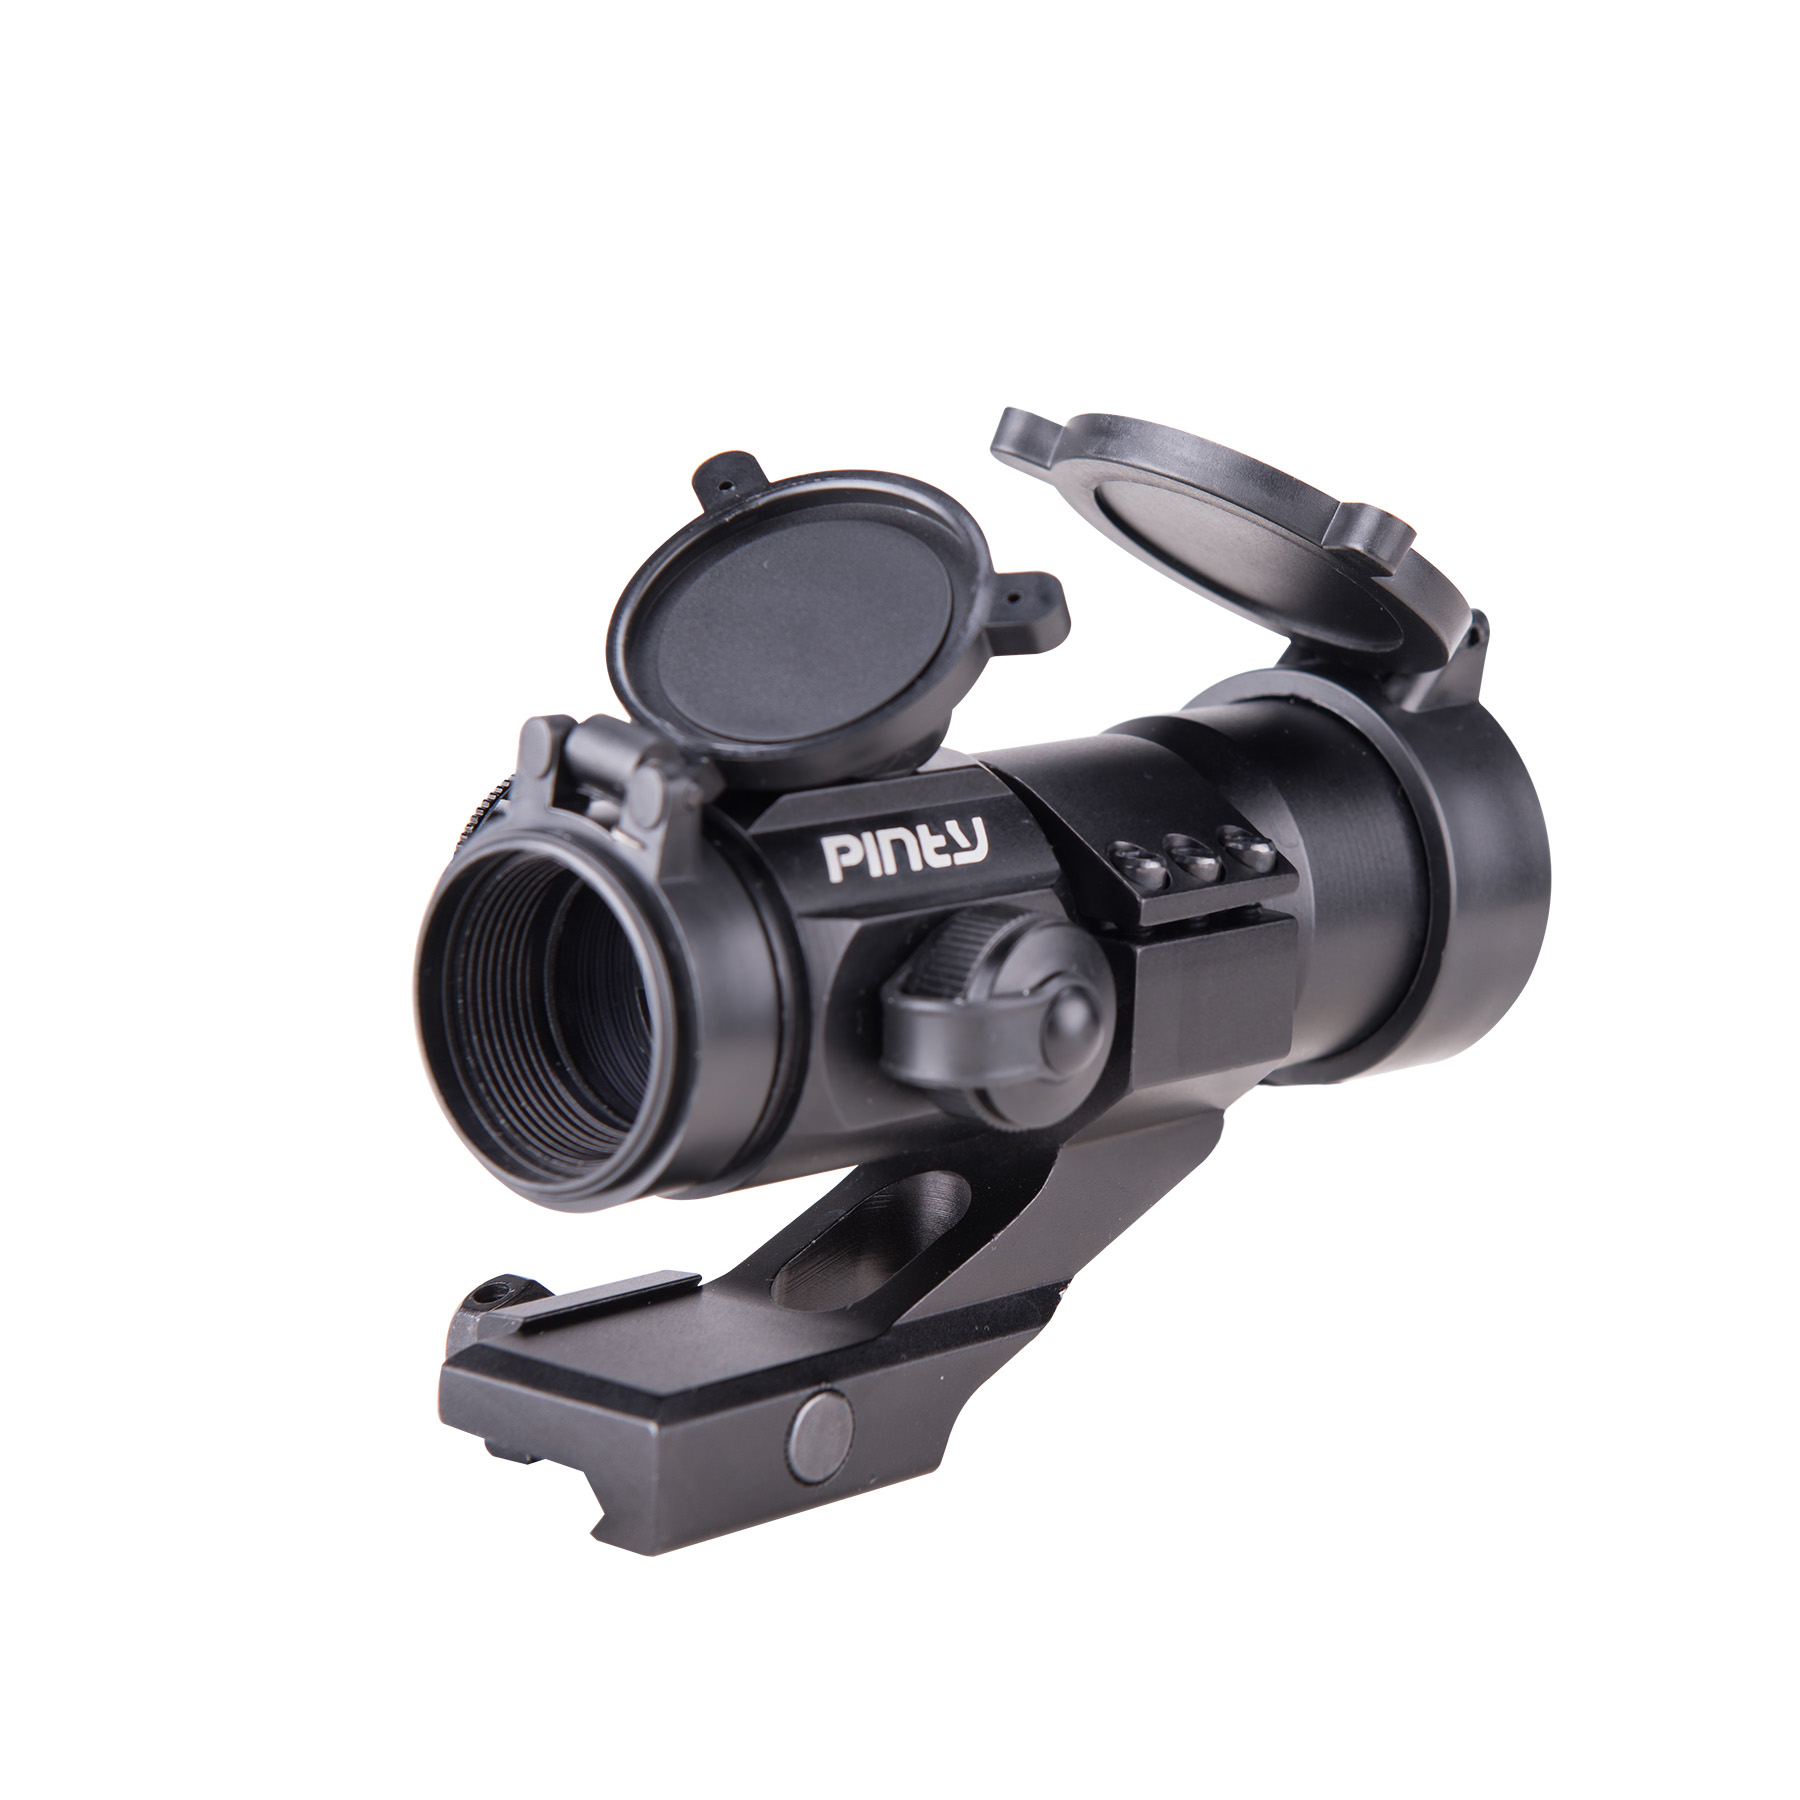 Pinty Tactical Reflex 4 MOA Red & Green Dot Sight Scope with PEPR Rail Mount